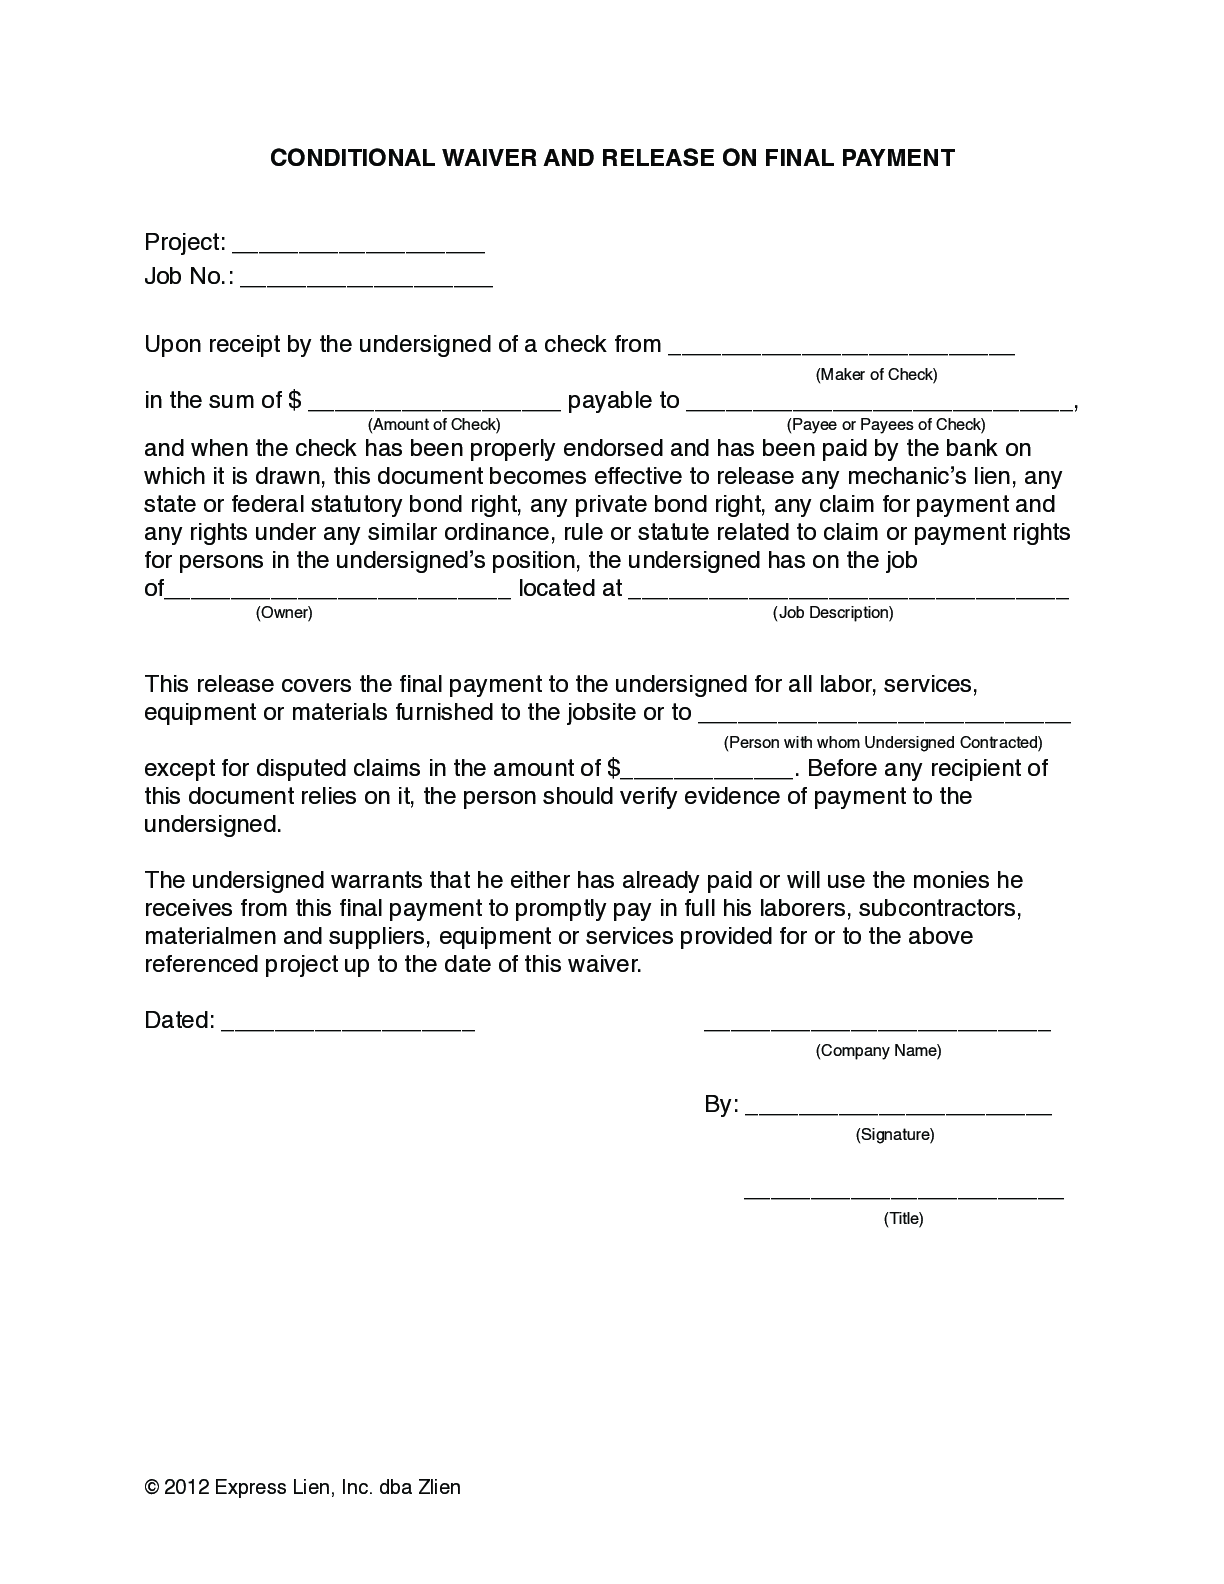 Arizona Final Conditional Lien Waiver Form - free from